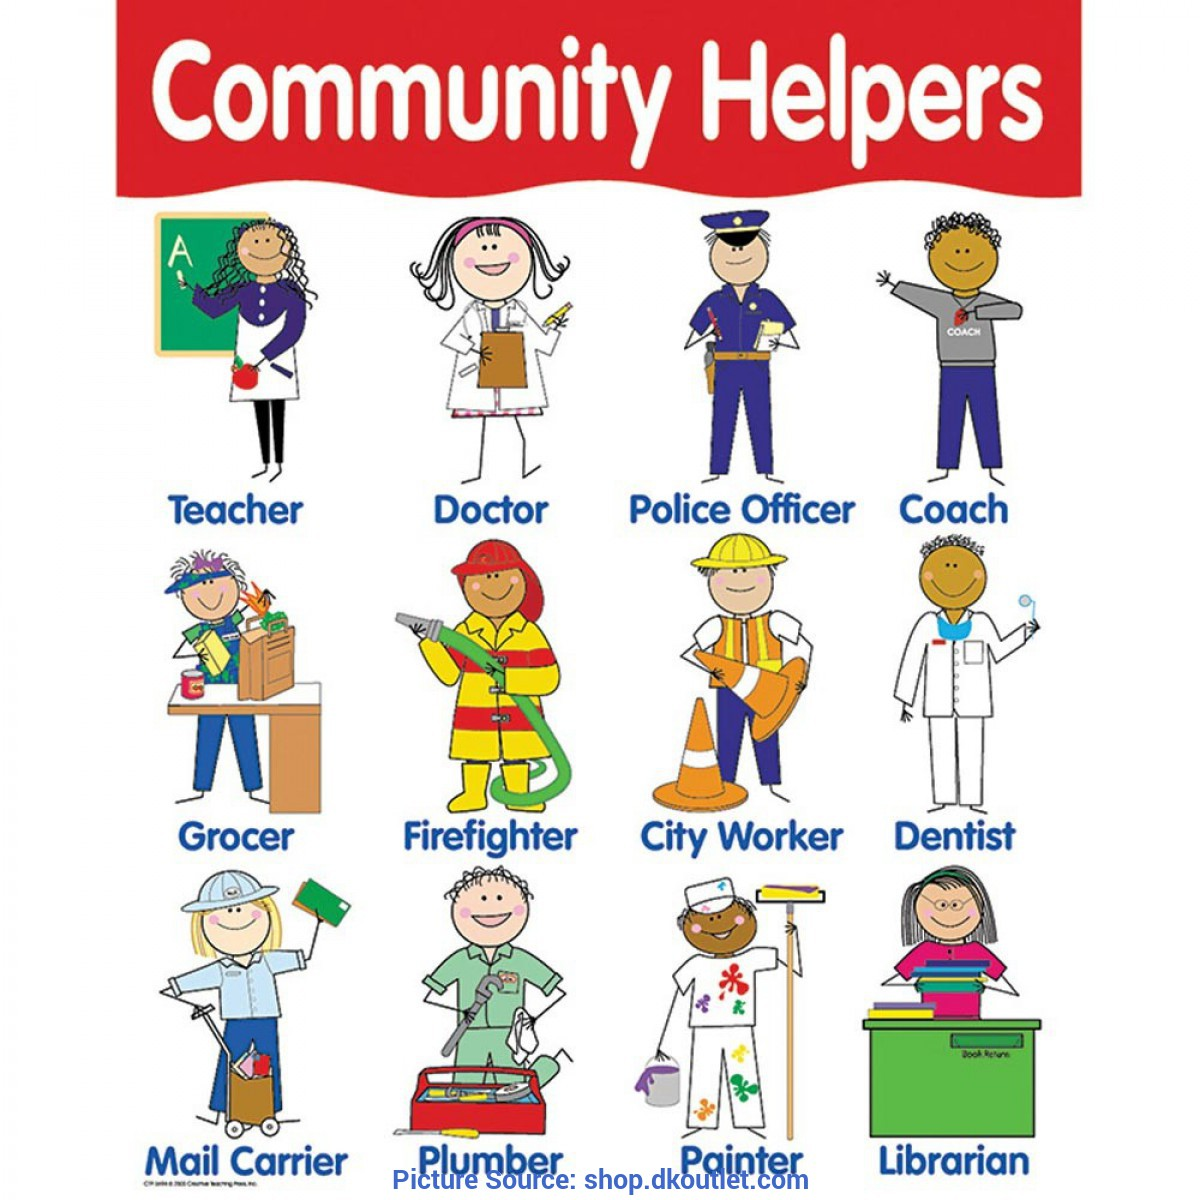 Simple Social Helpers Pictures Chart Community Helpers - Ctp5694 | Creative Teaching Press | Ch